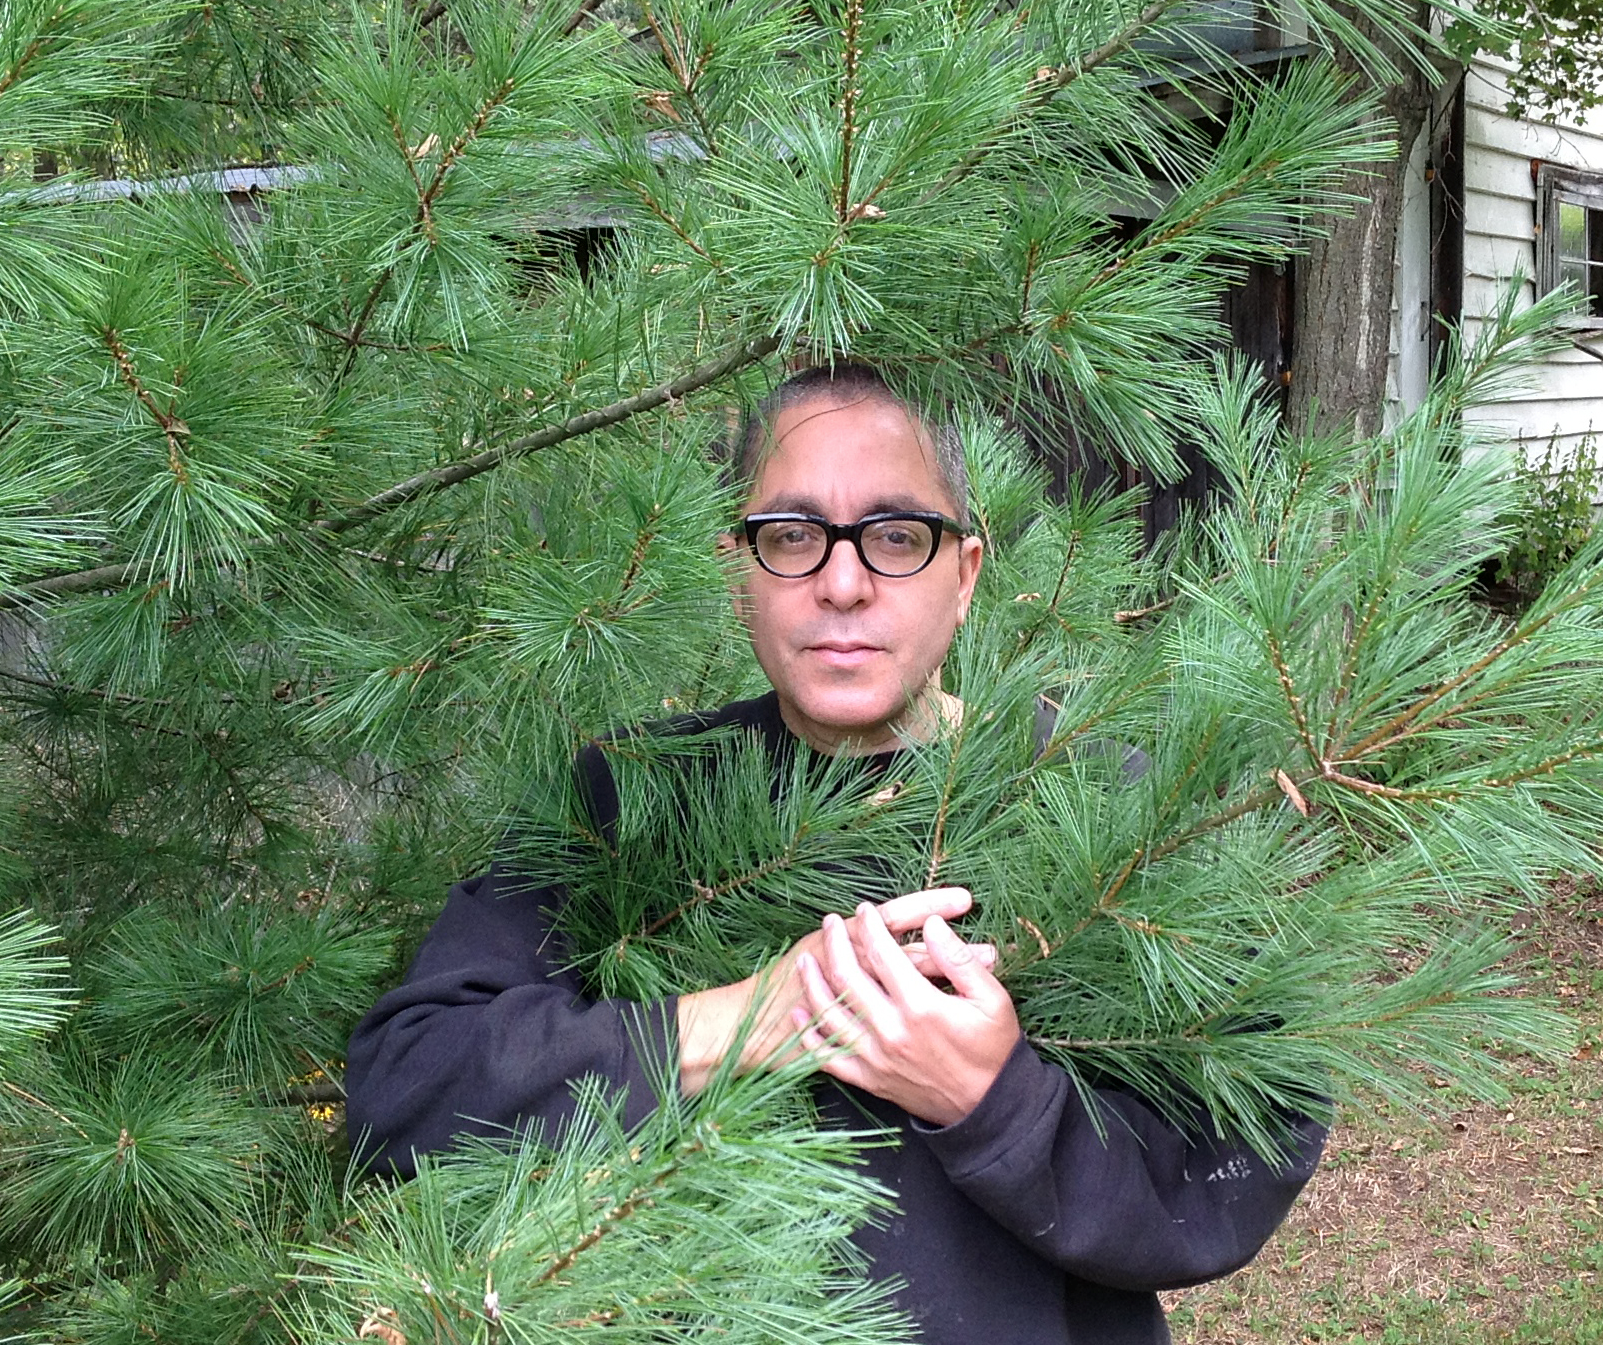 Nicolás peers back at you from behind the branches of a pine tree